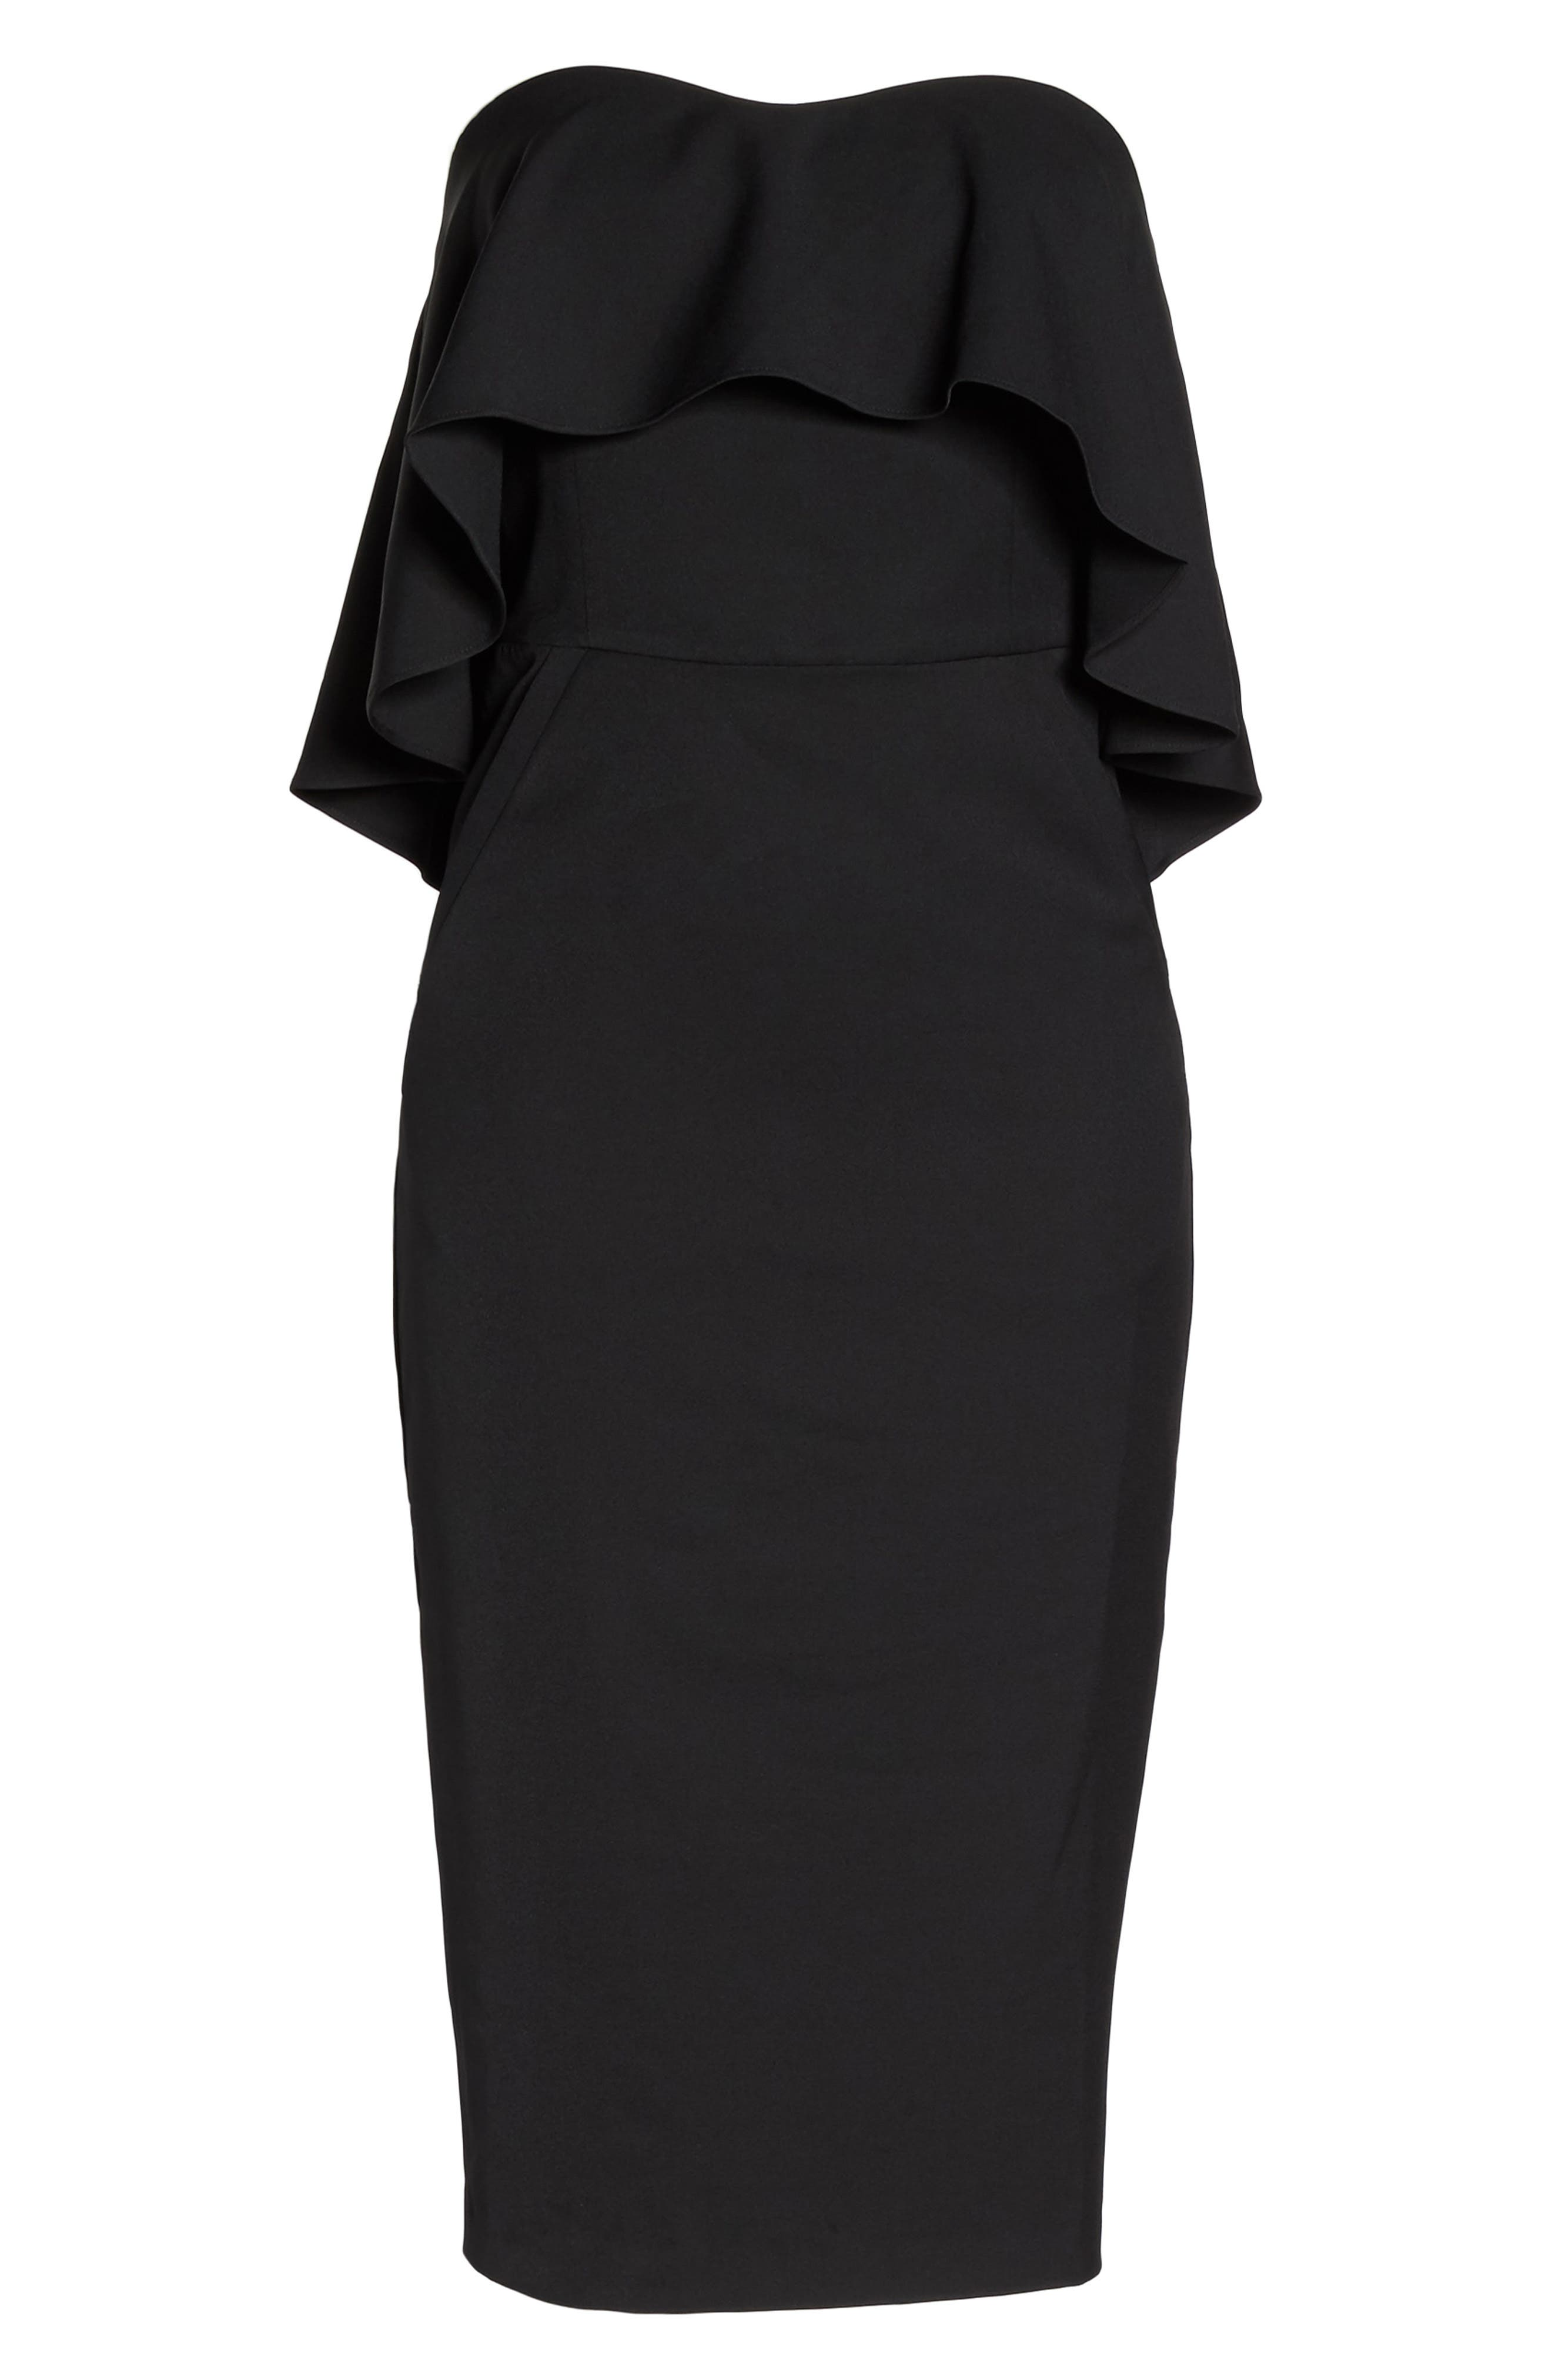 Ruffle Stretch Crepe Sheath Dress,                             Main thumbnail 1, color,                             001